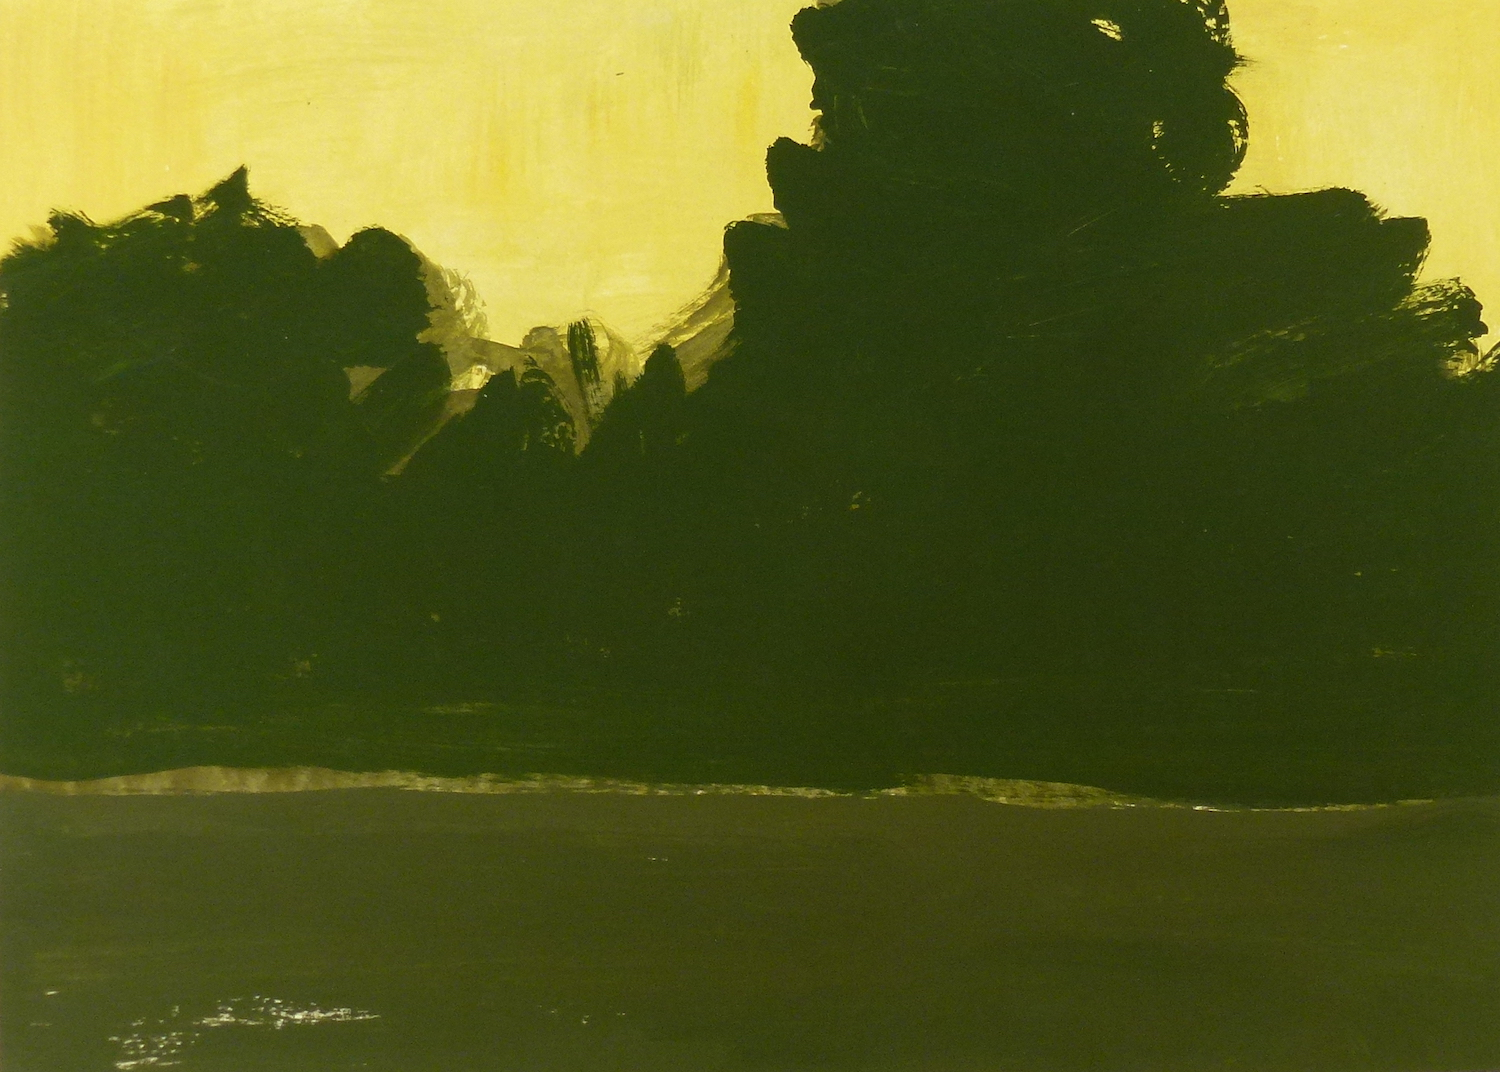 Andrew SAYERS Trees and River lI 218151